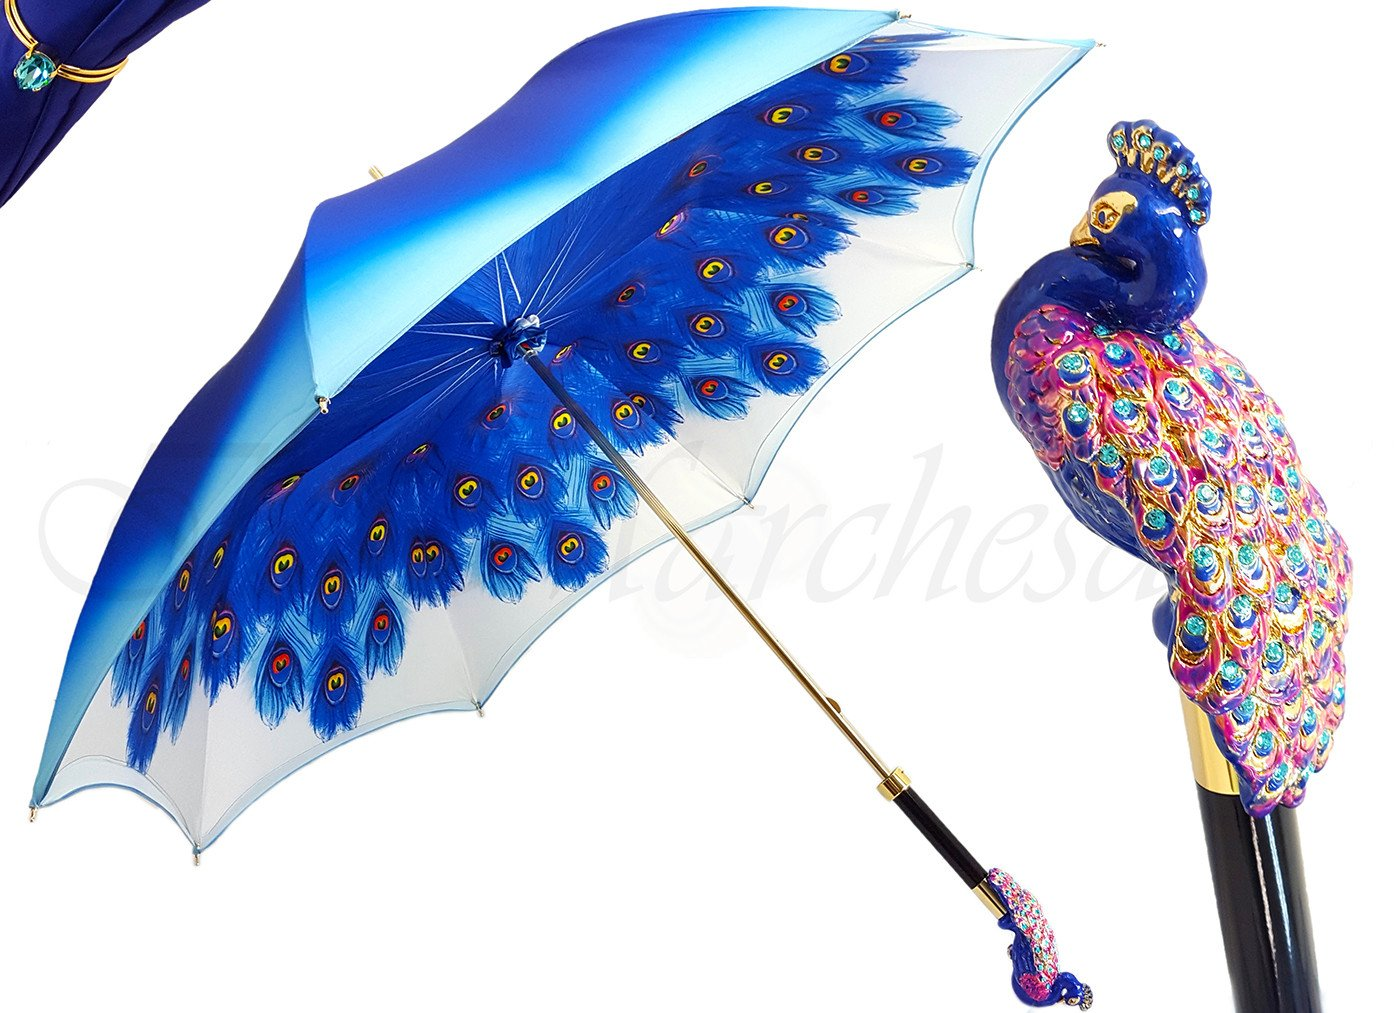 il Marchesato Blue Peacock Umbrella - il-marchesato